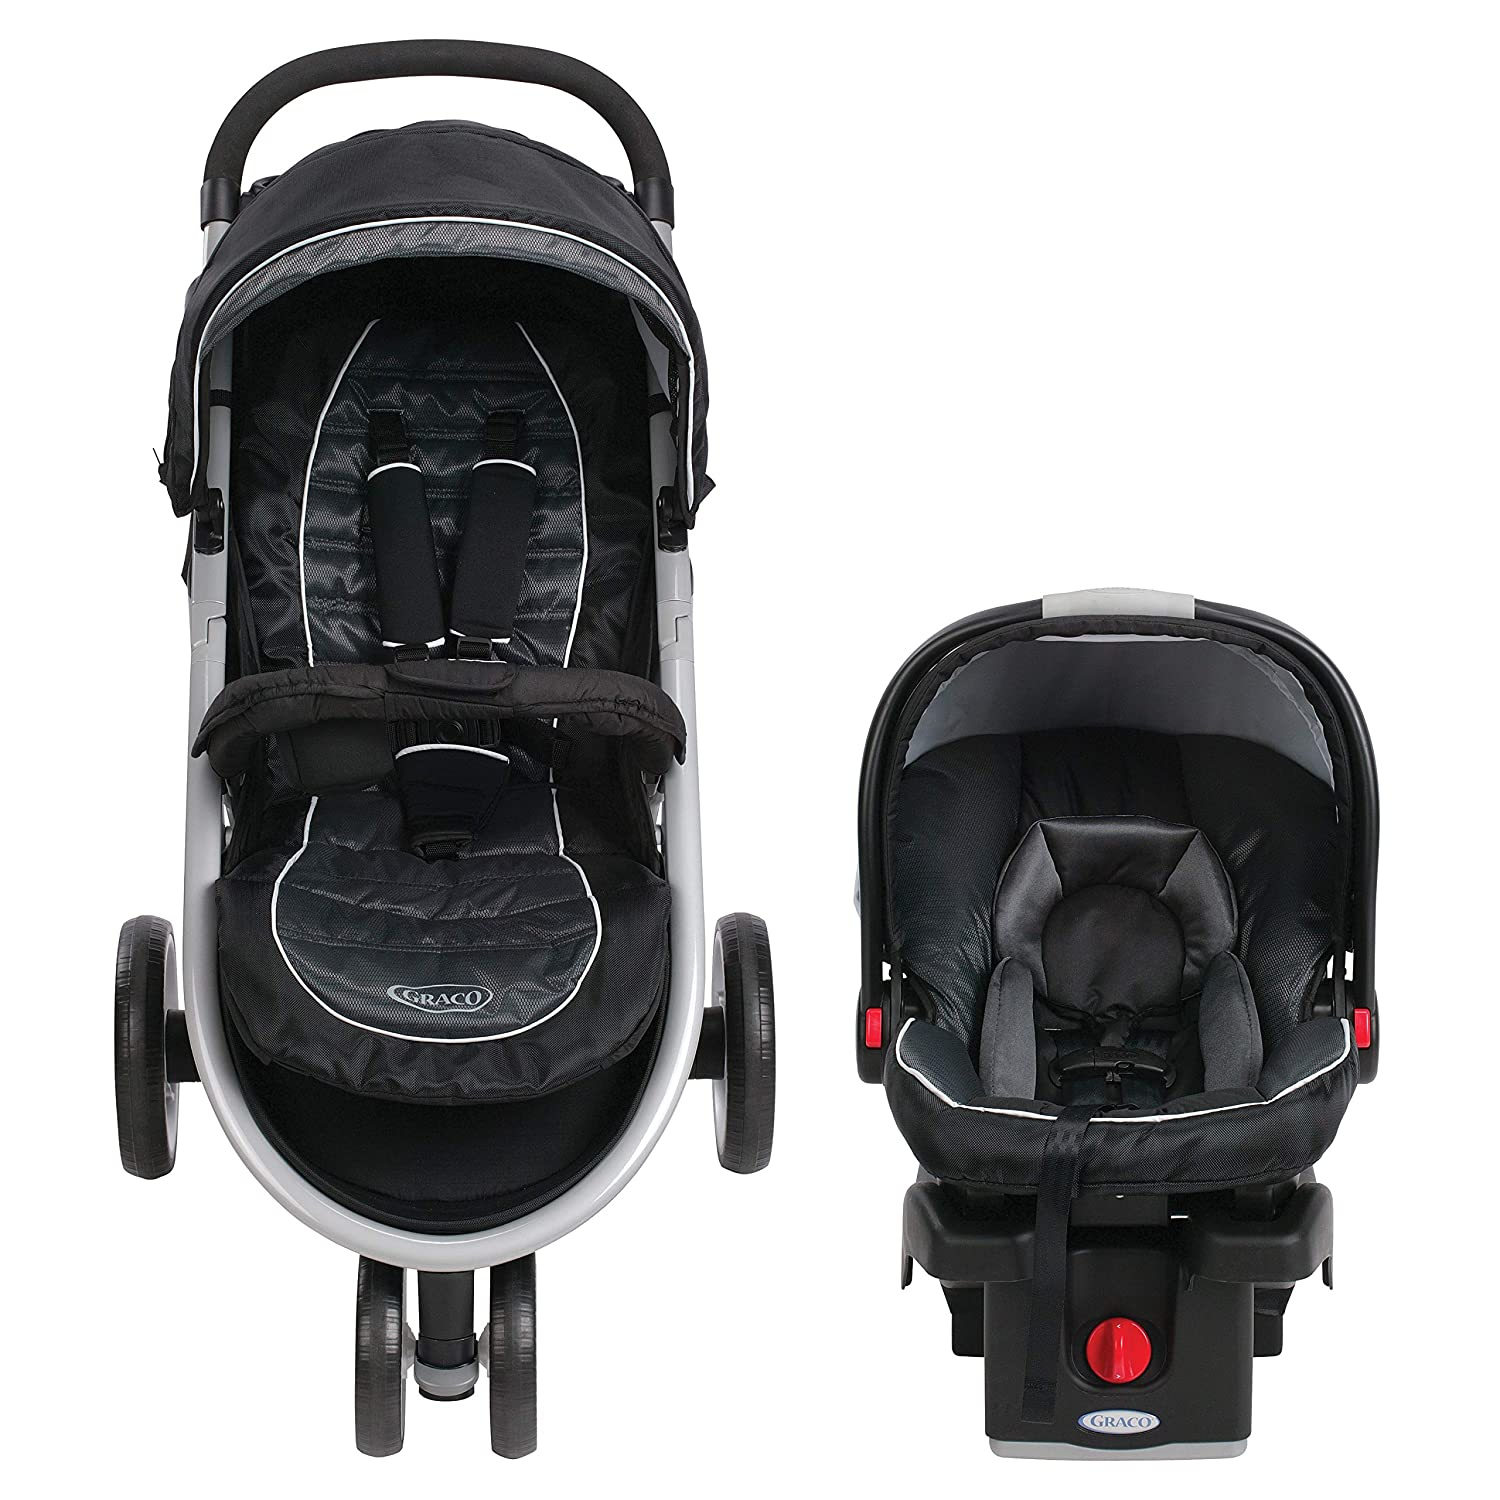 177abed36e0 Amazon.com   Graco Aire3 Travel System (Stroller and Car Seat ...